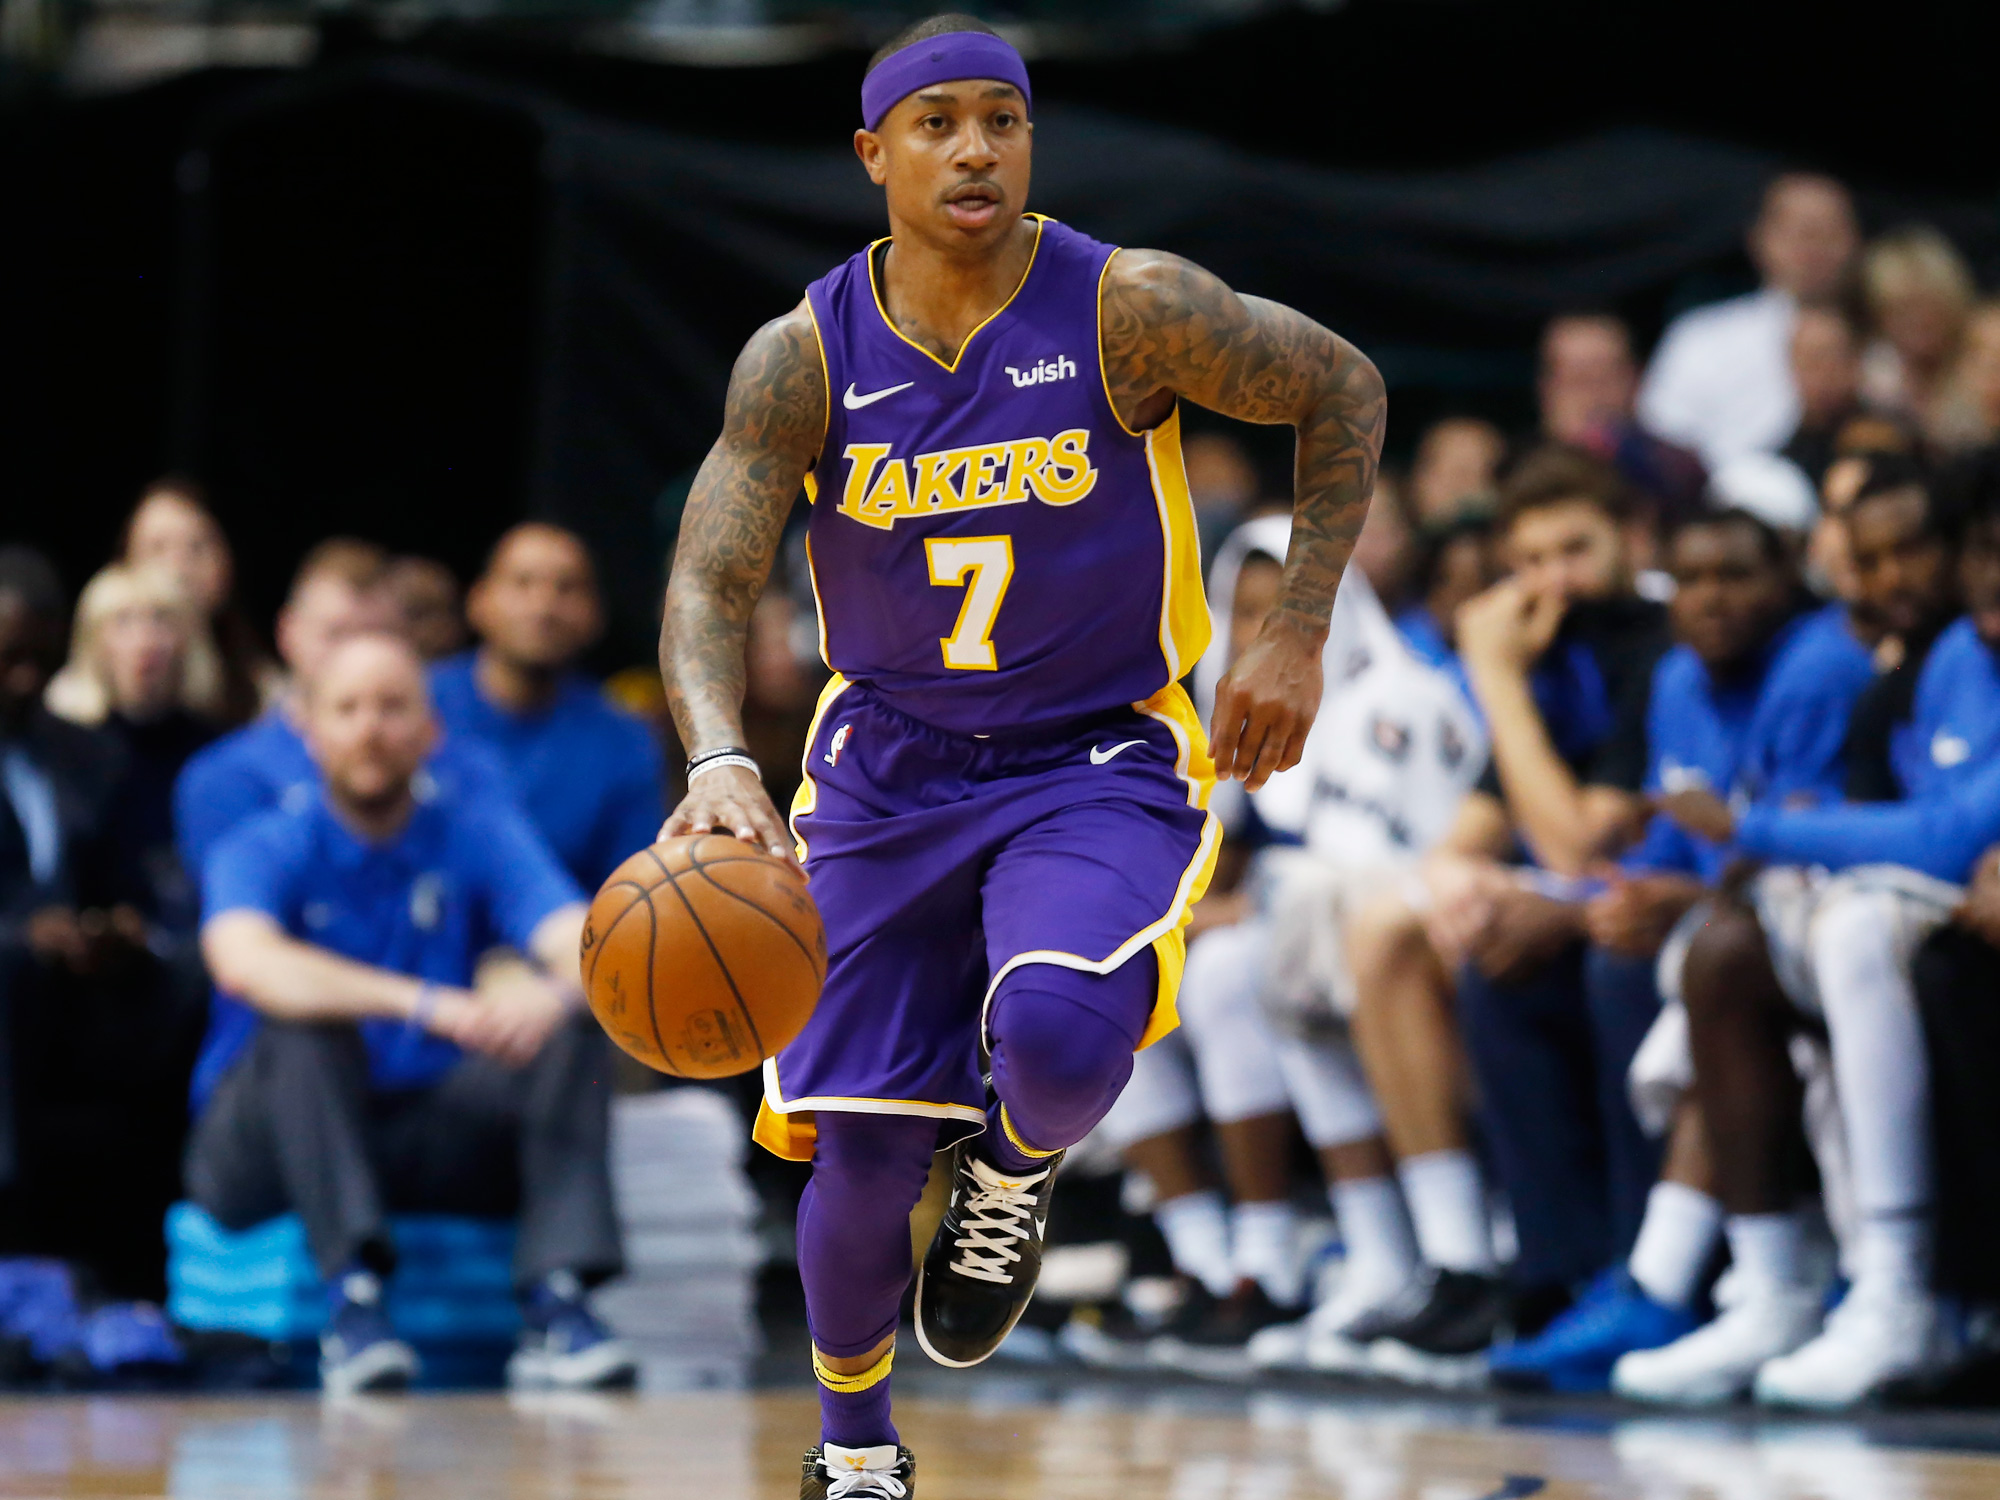 efac53d10 Isaiah Thomas Faces Harsh Reality With Lakers